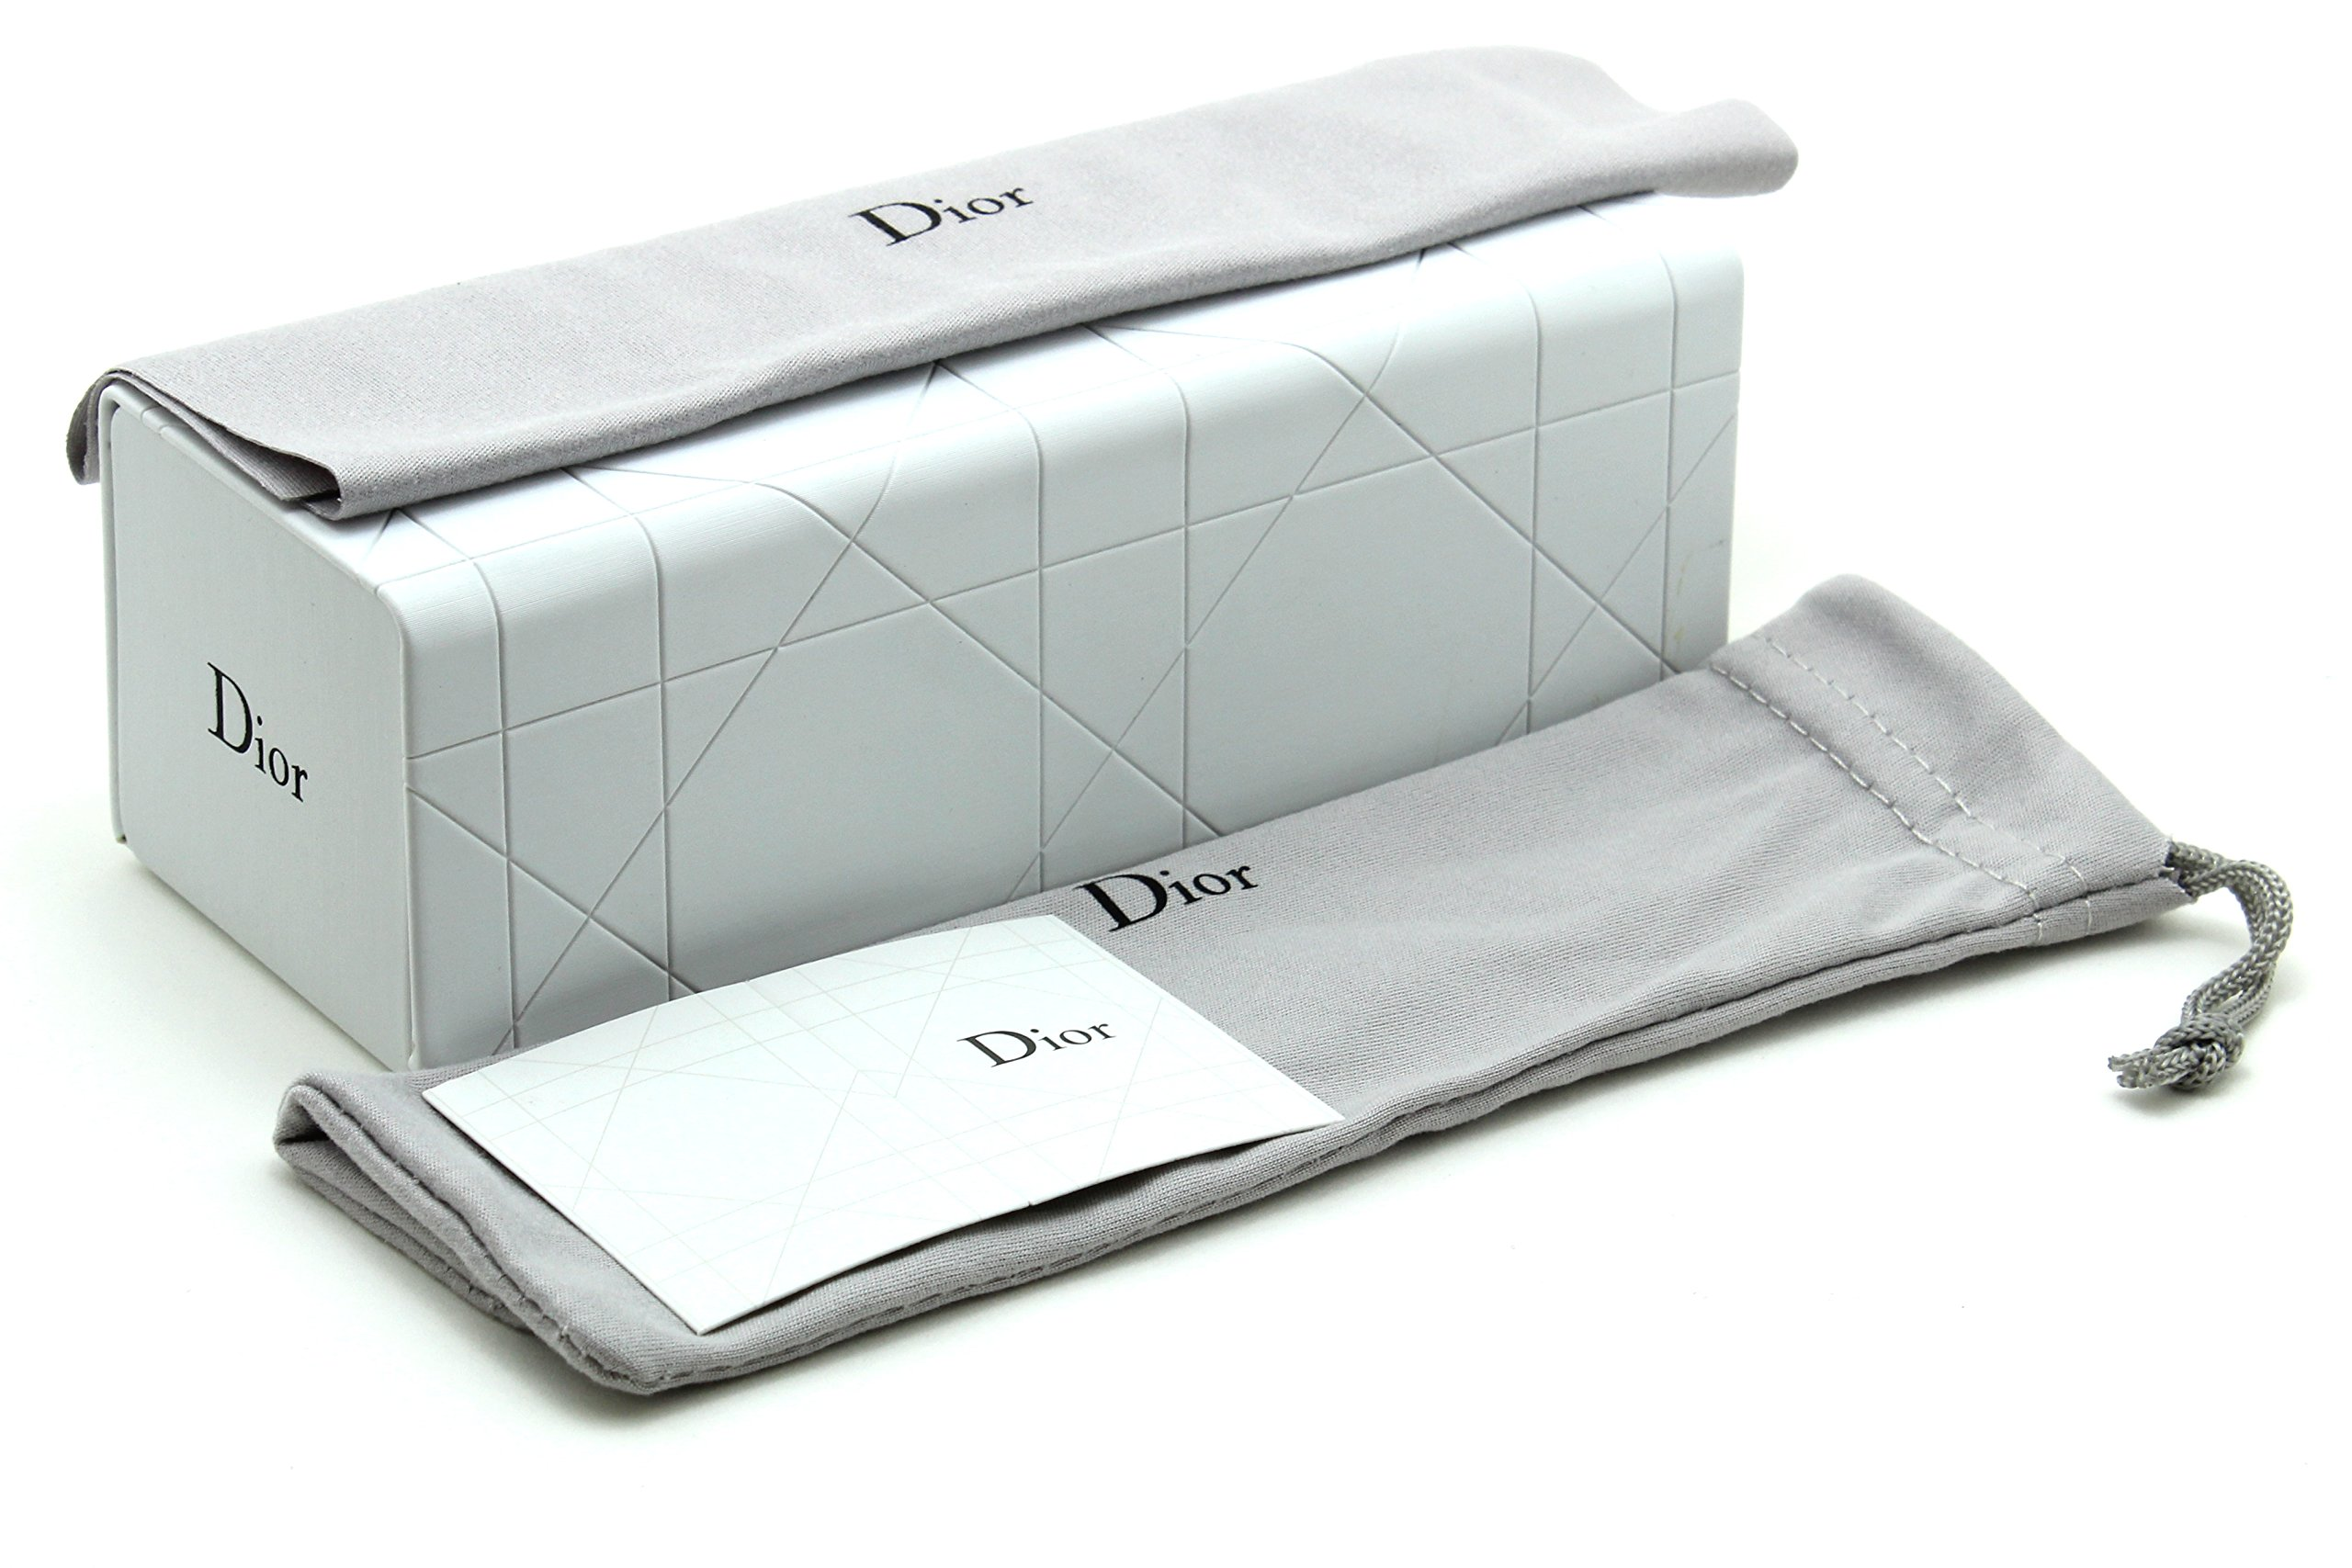 New Original Dior Sunglass Eyeglass Magnetic Hard Case w/Dior Cleaning Cloth and Soft Pouch Large by Dior